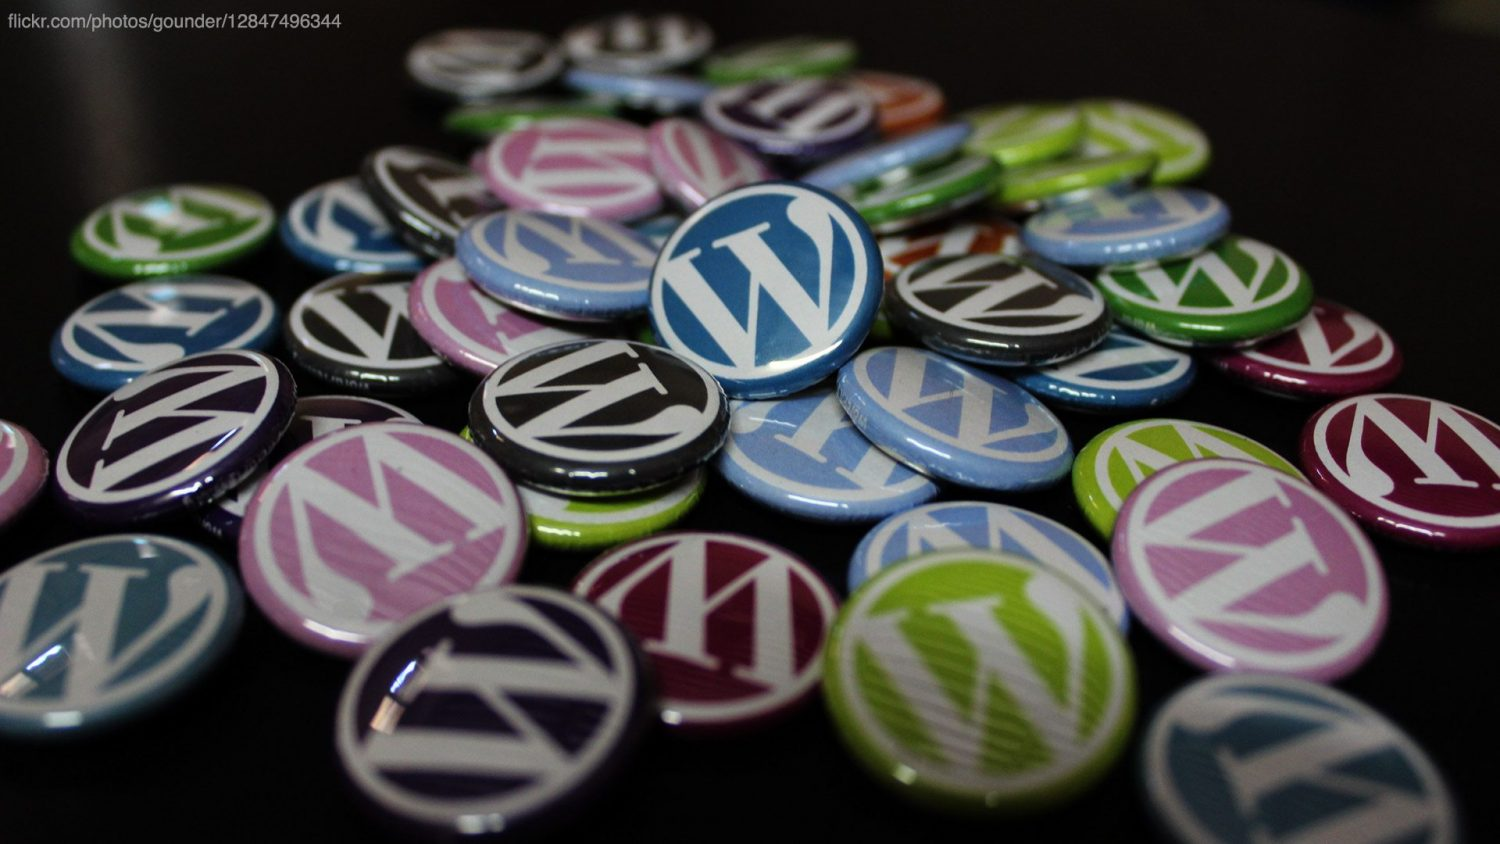 https://marketingland.com/wp-engine-top-wordpress-plug-ins-themes-generated-quarter-billion-dollars-since-2010-195699